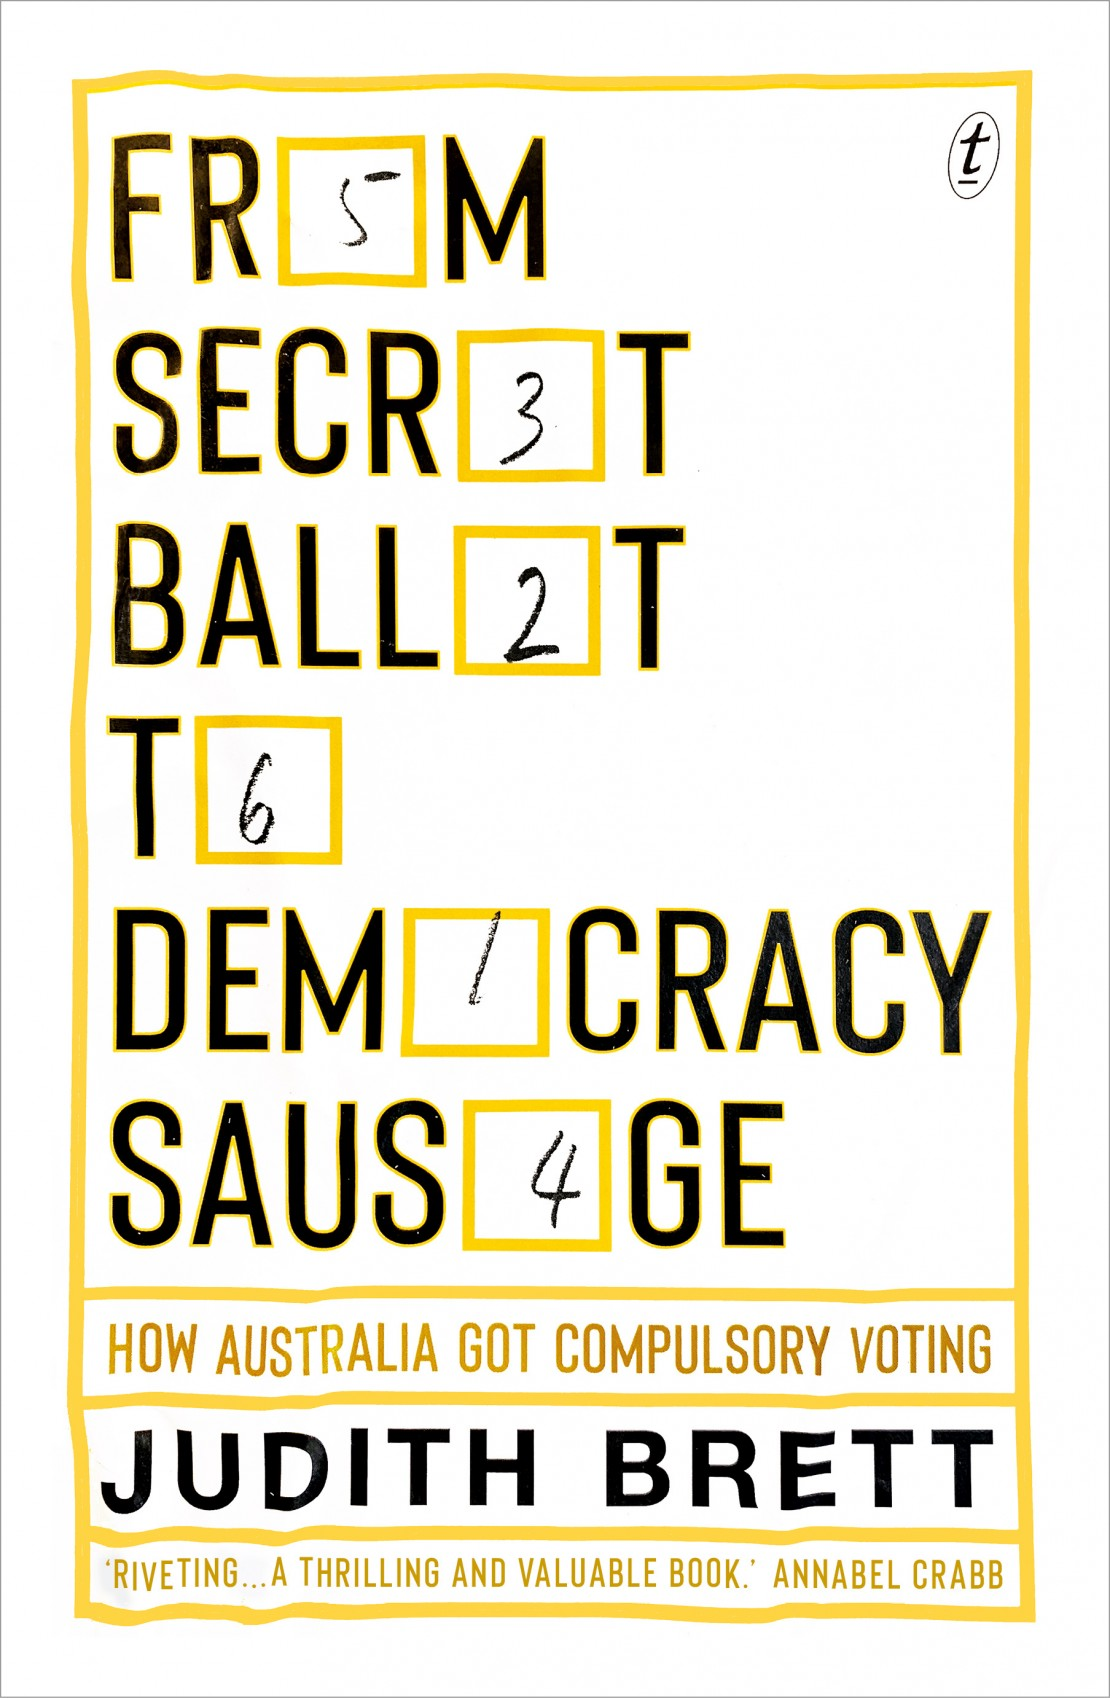 image of a book cover From Secret Ballot to Democracy Sausage How Australia got Compulsory Voting by Judith Brett cover resembles a filled in ballot paper